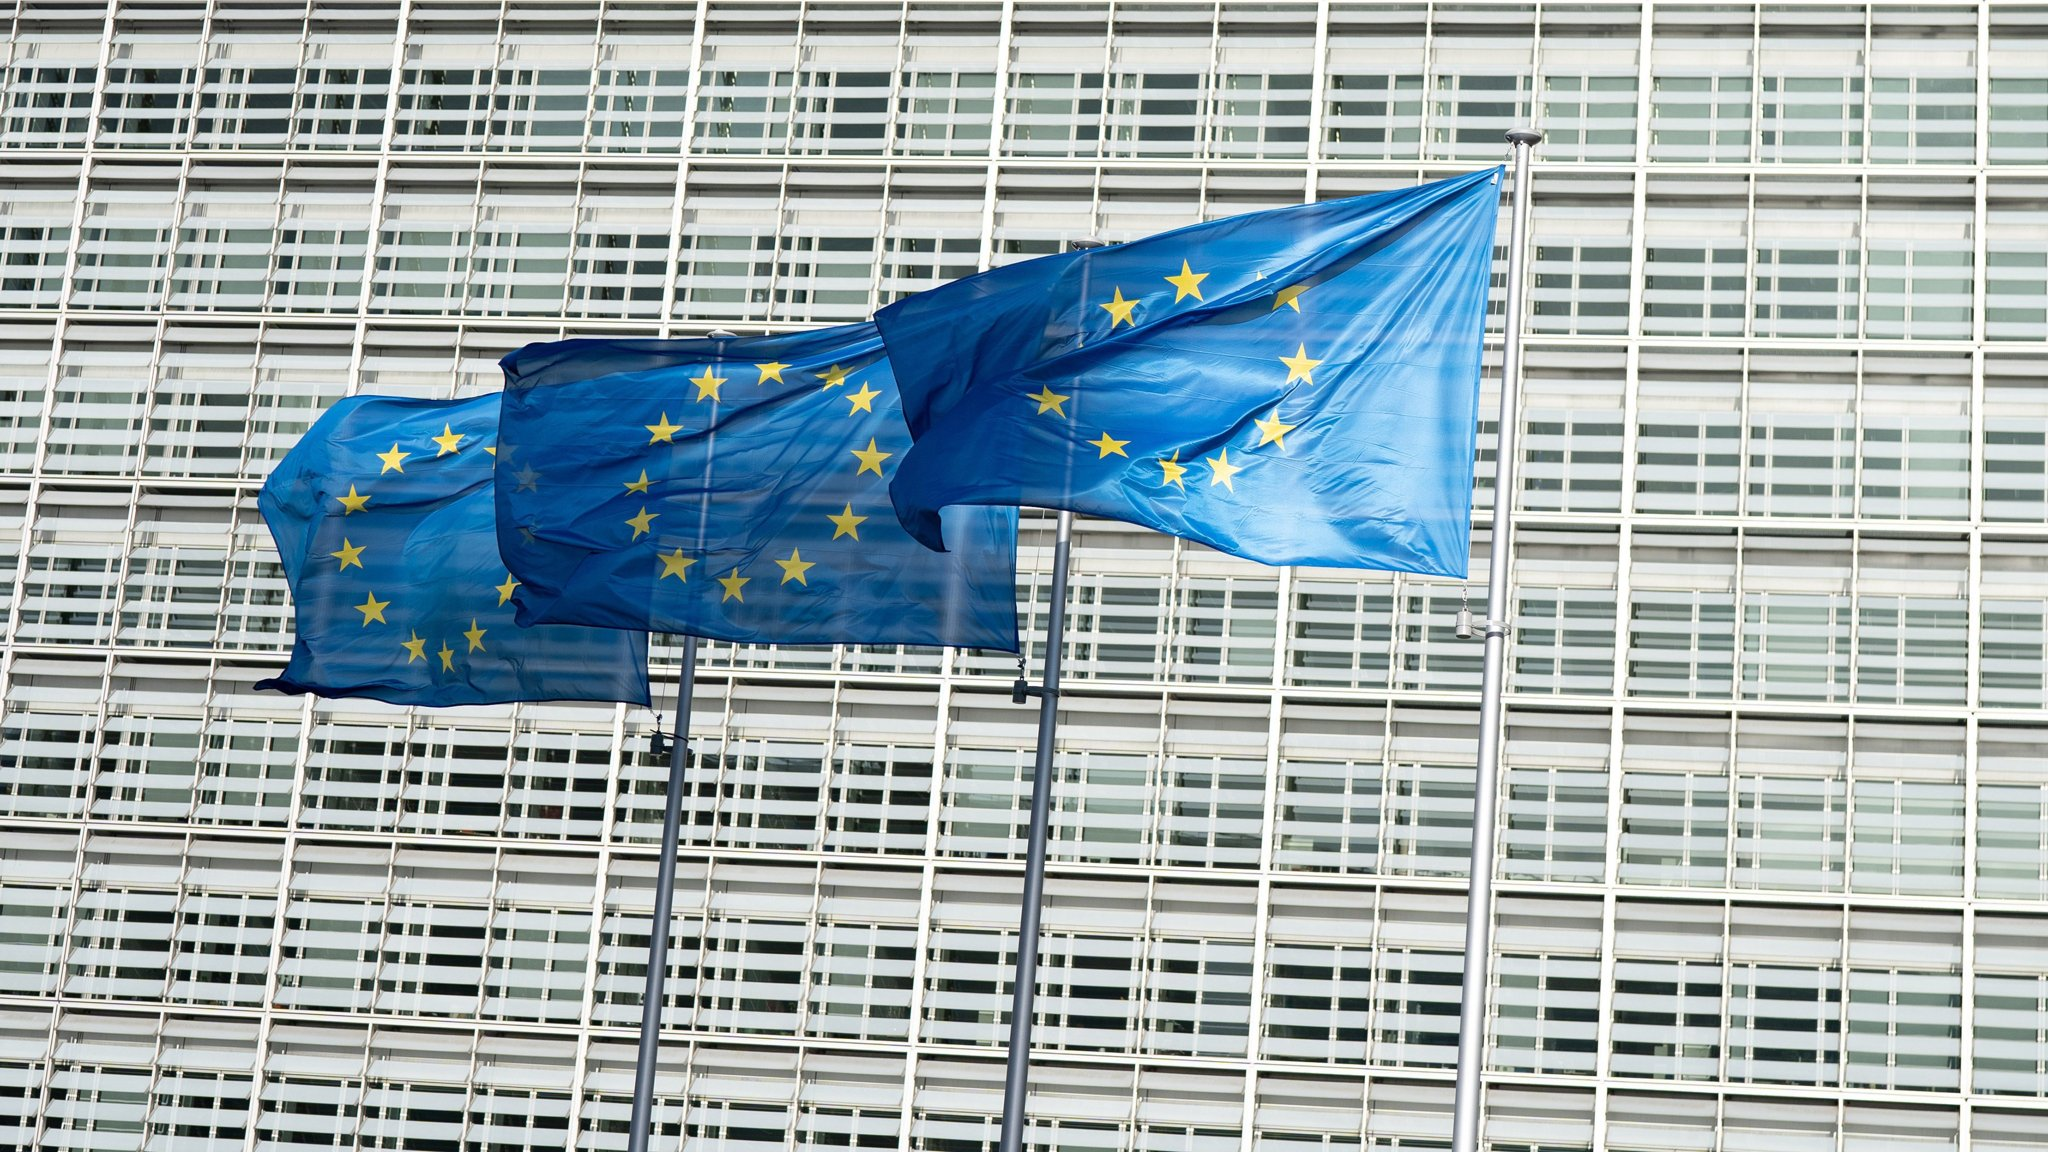 EU countries finalise draft rules to update copyright law